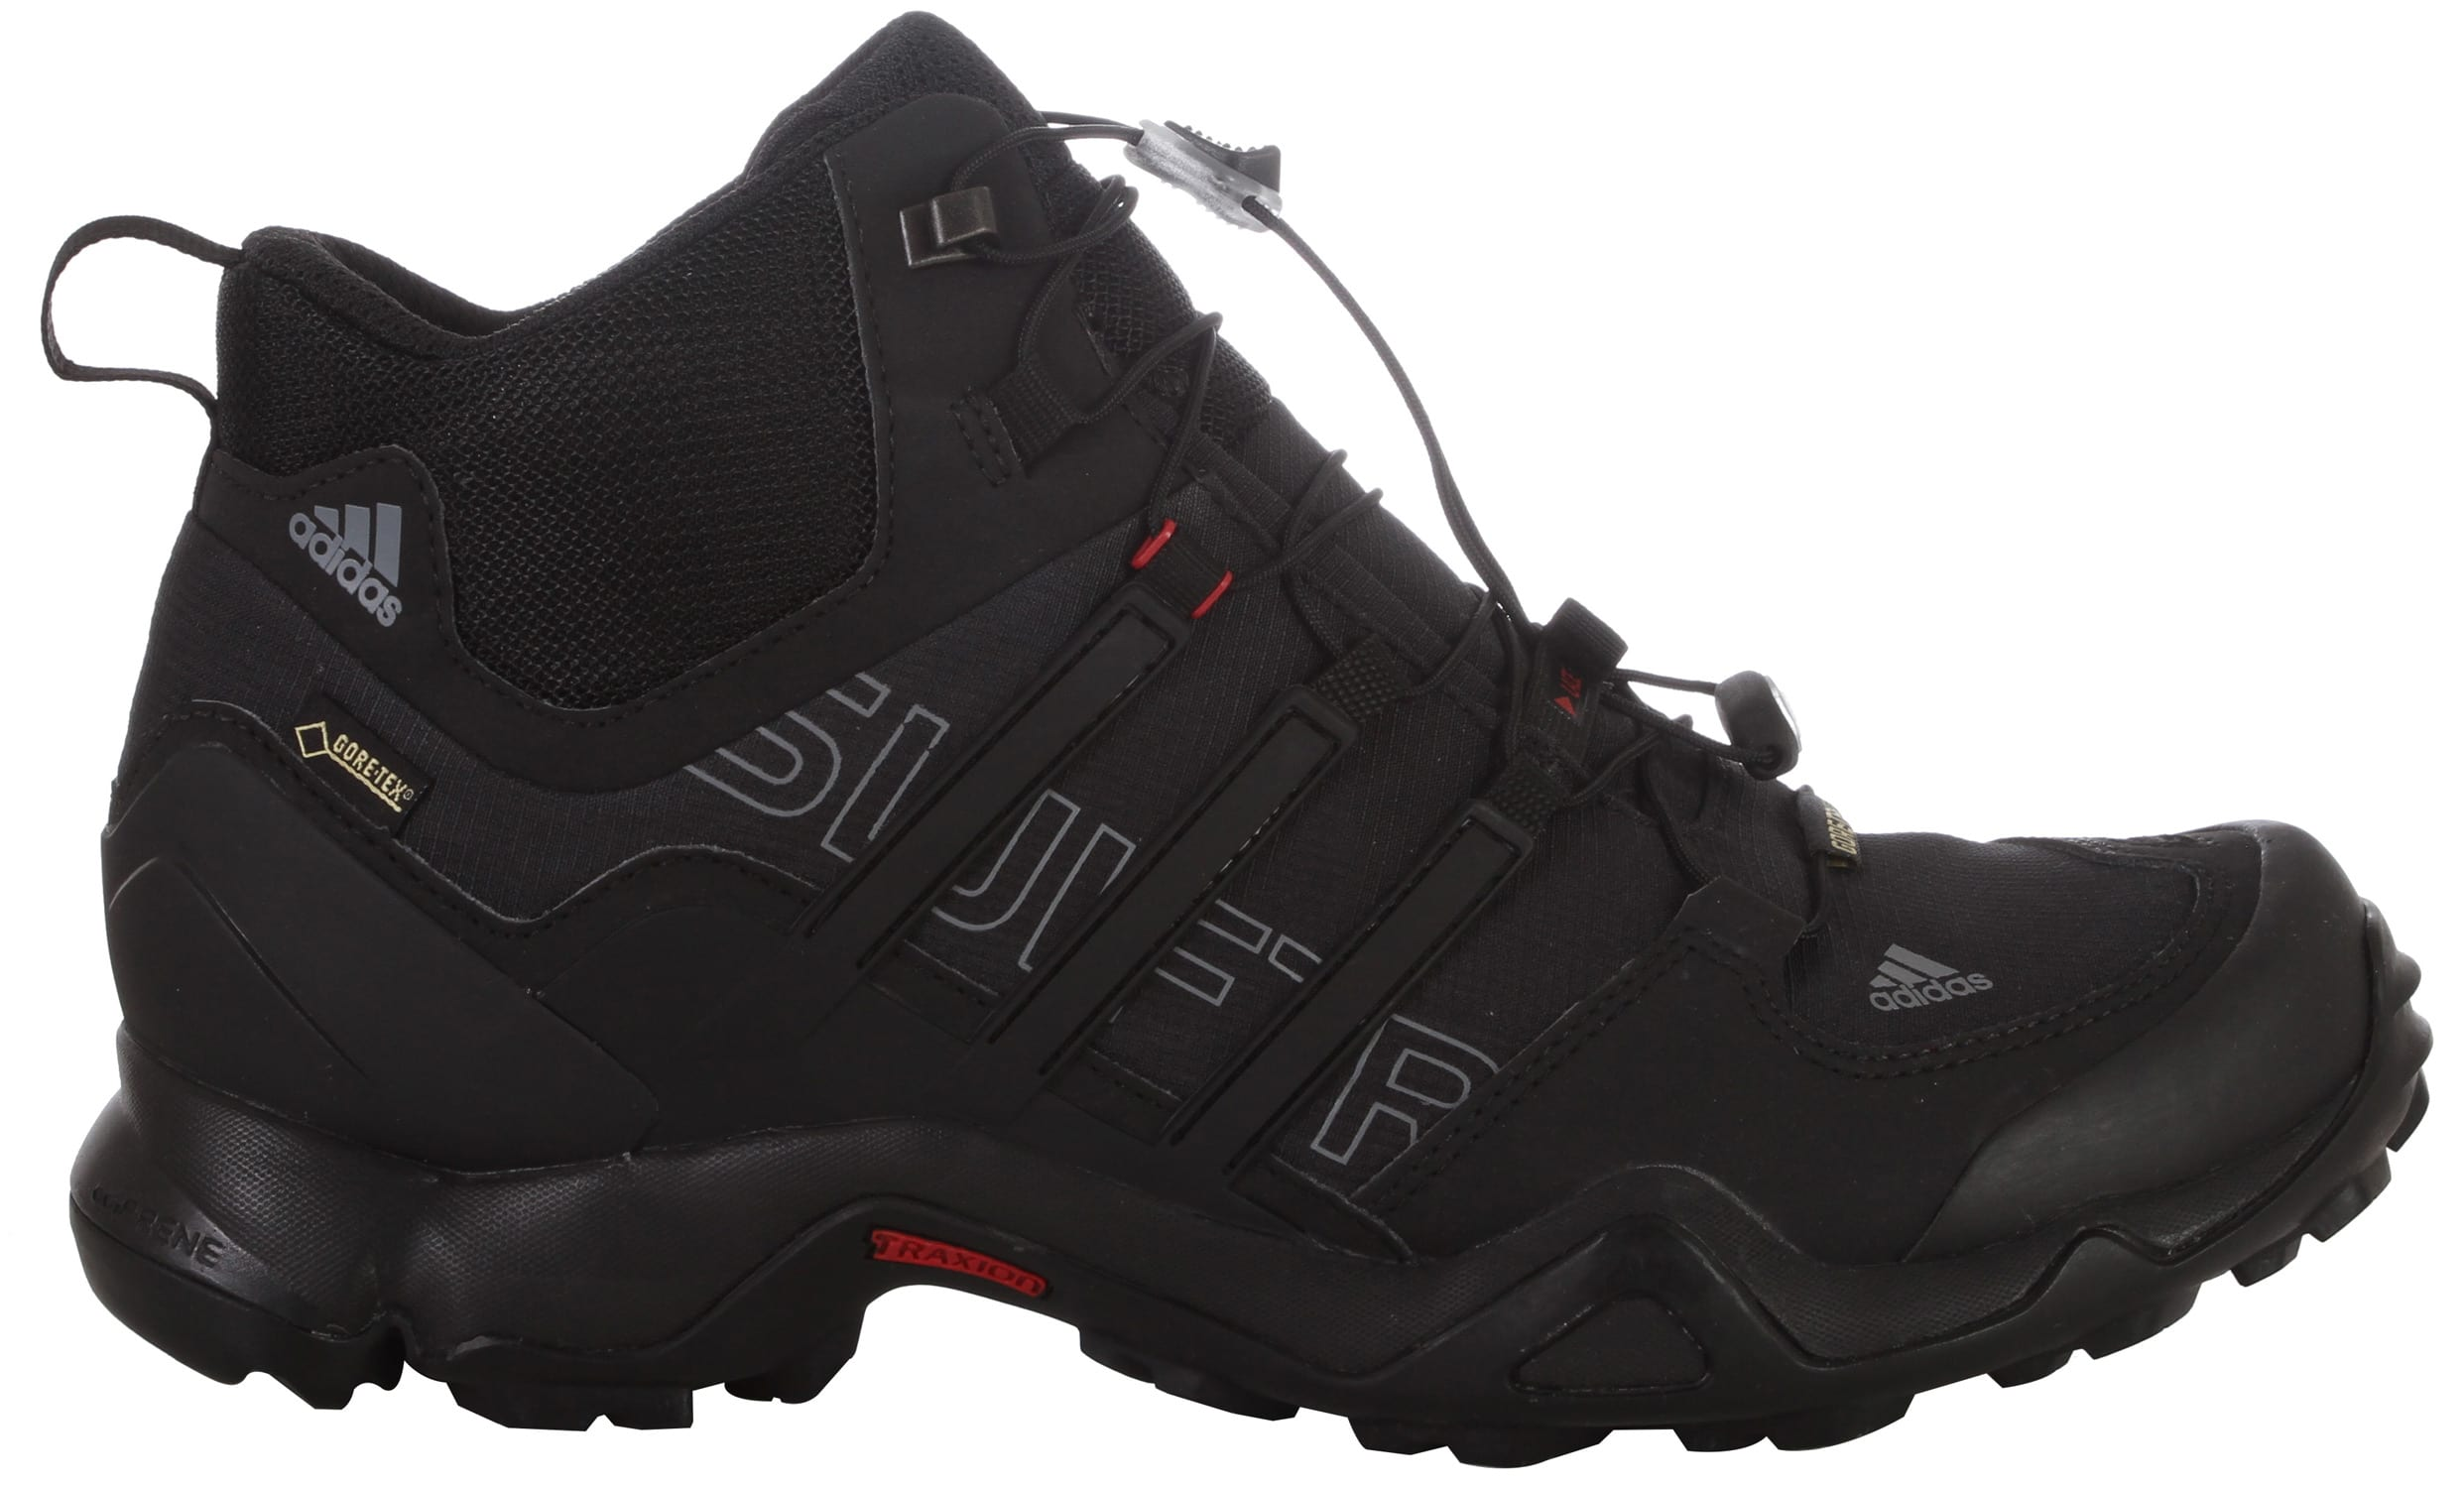 d98a3f49b Adidas Terrex Swift R Mid GTX Hiking Boots